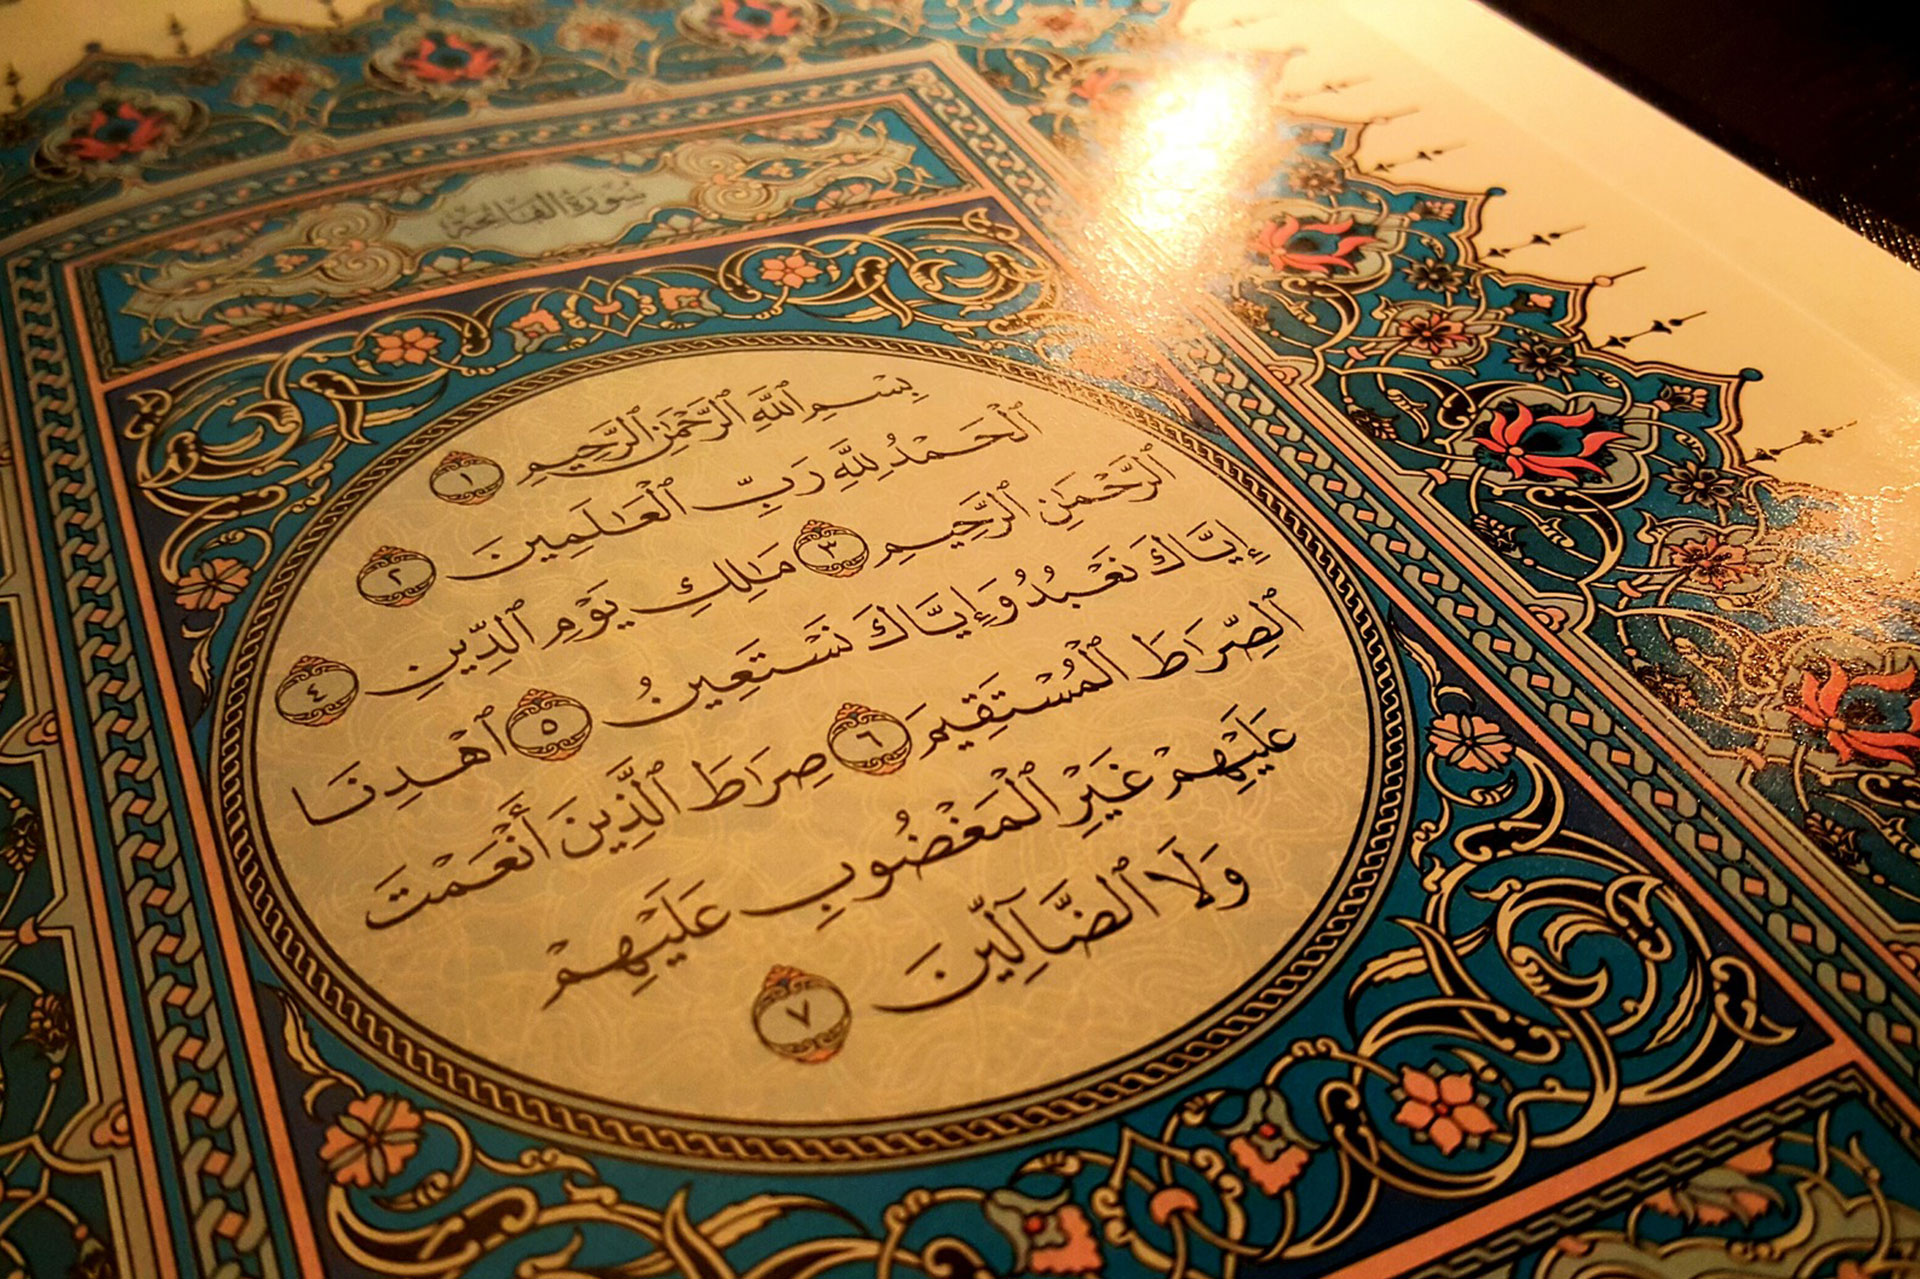 A Short Introduction to the Qur'an